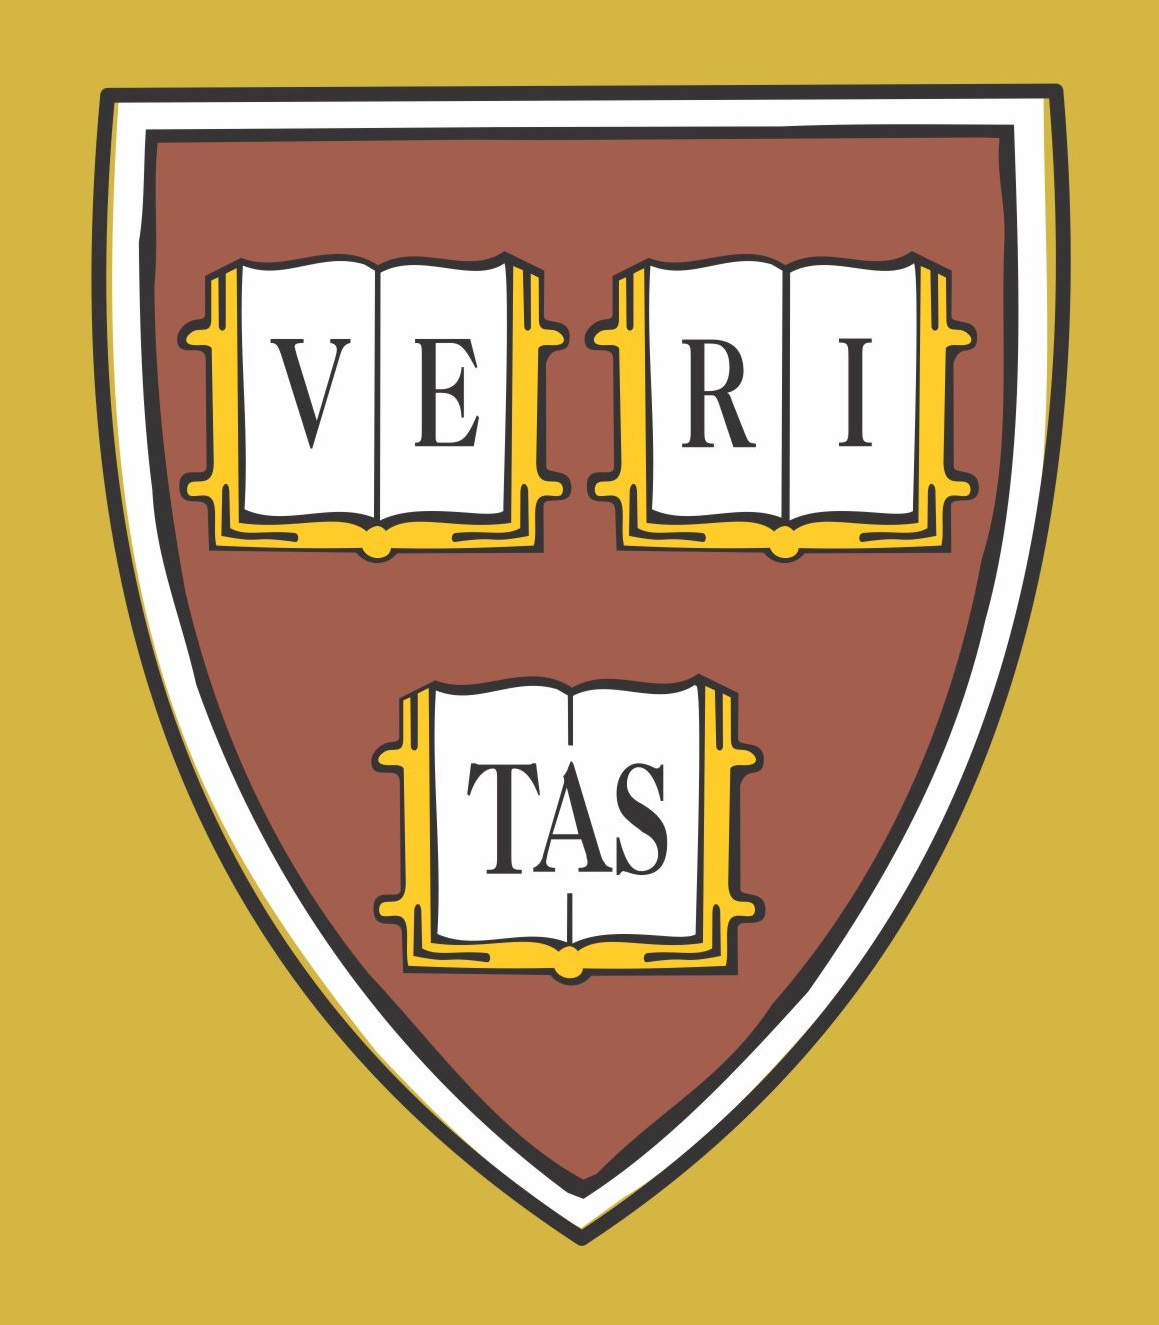 Veritas Logo - Harvard University